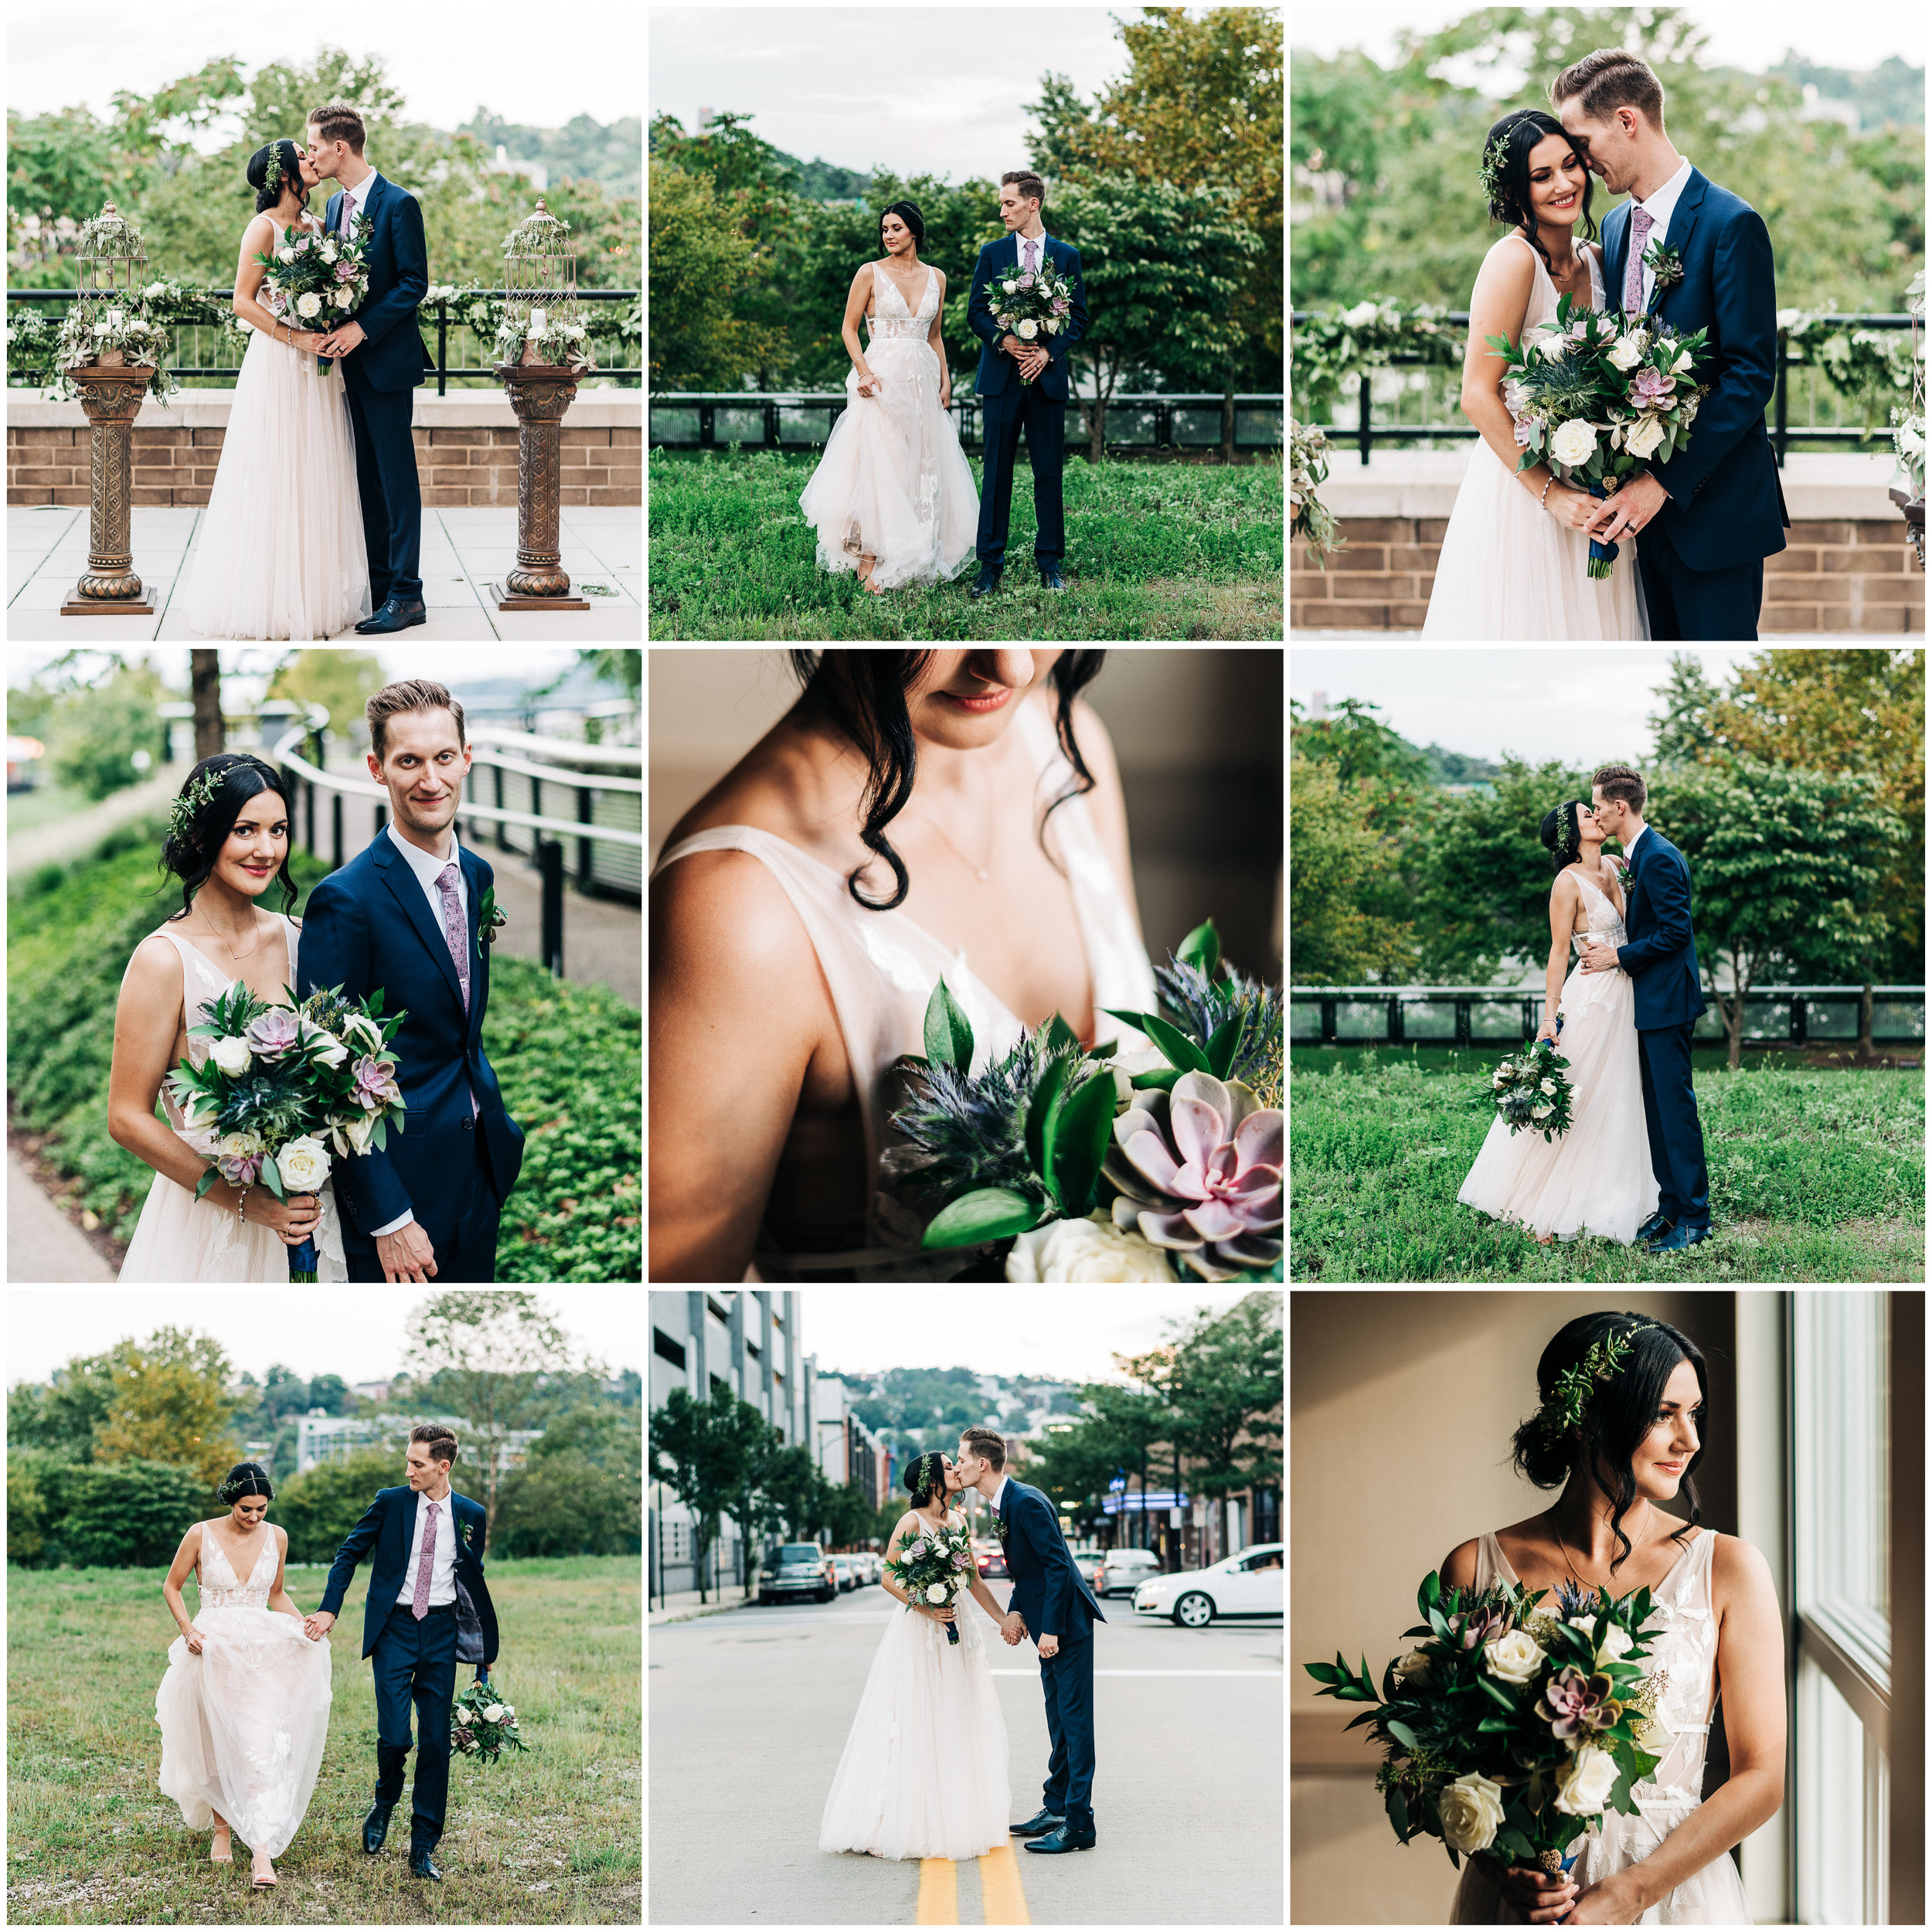 Emily + Brett Wedding 1x1.jpg